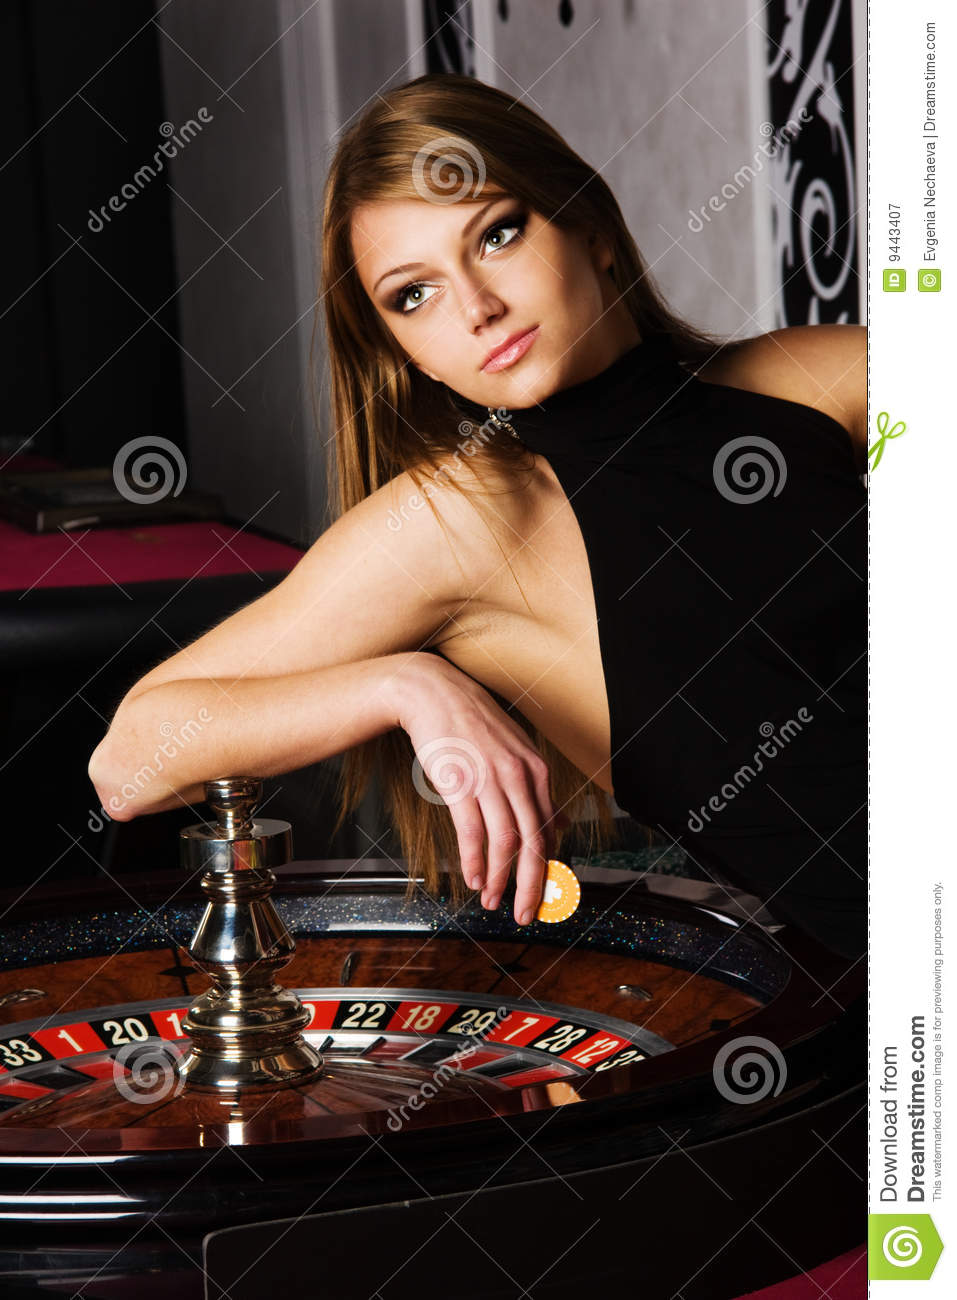 how to play online casino slizling hot